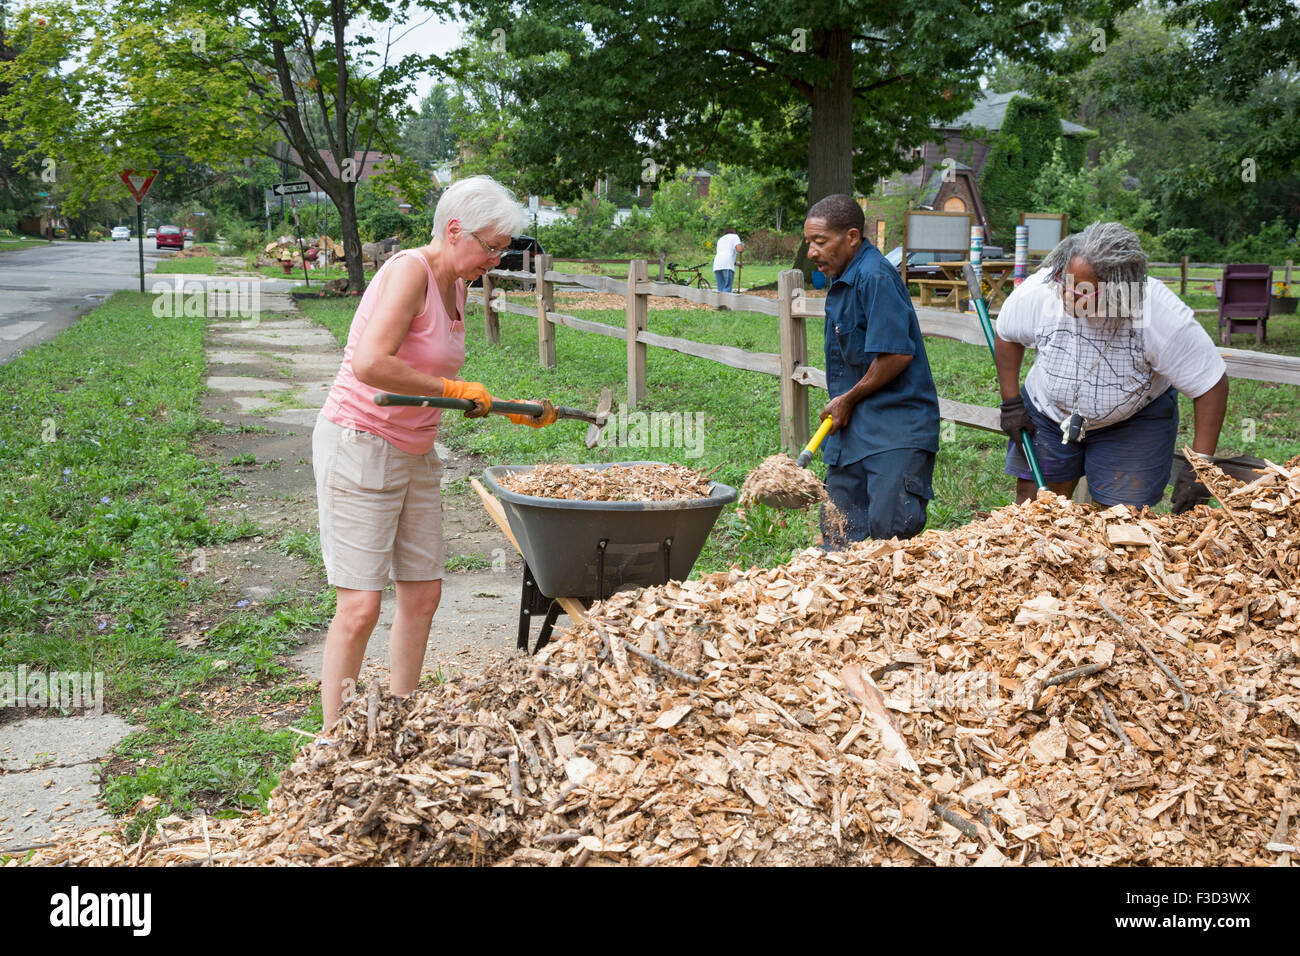 Detroit, Michigan - Members of the Three Mile Block Club work to create a neighborhood park on three vacant lots. Stock Photo